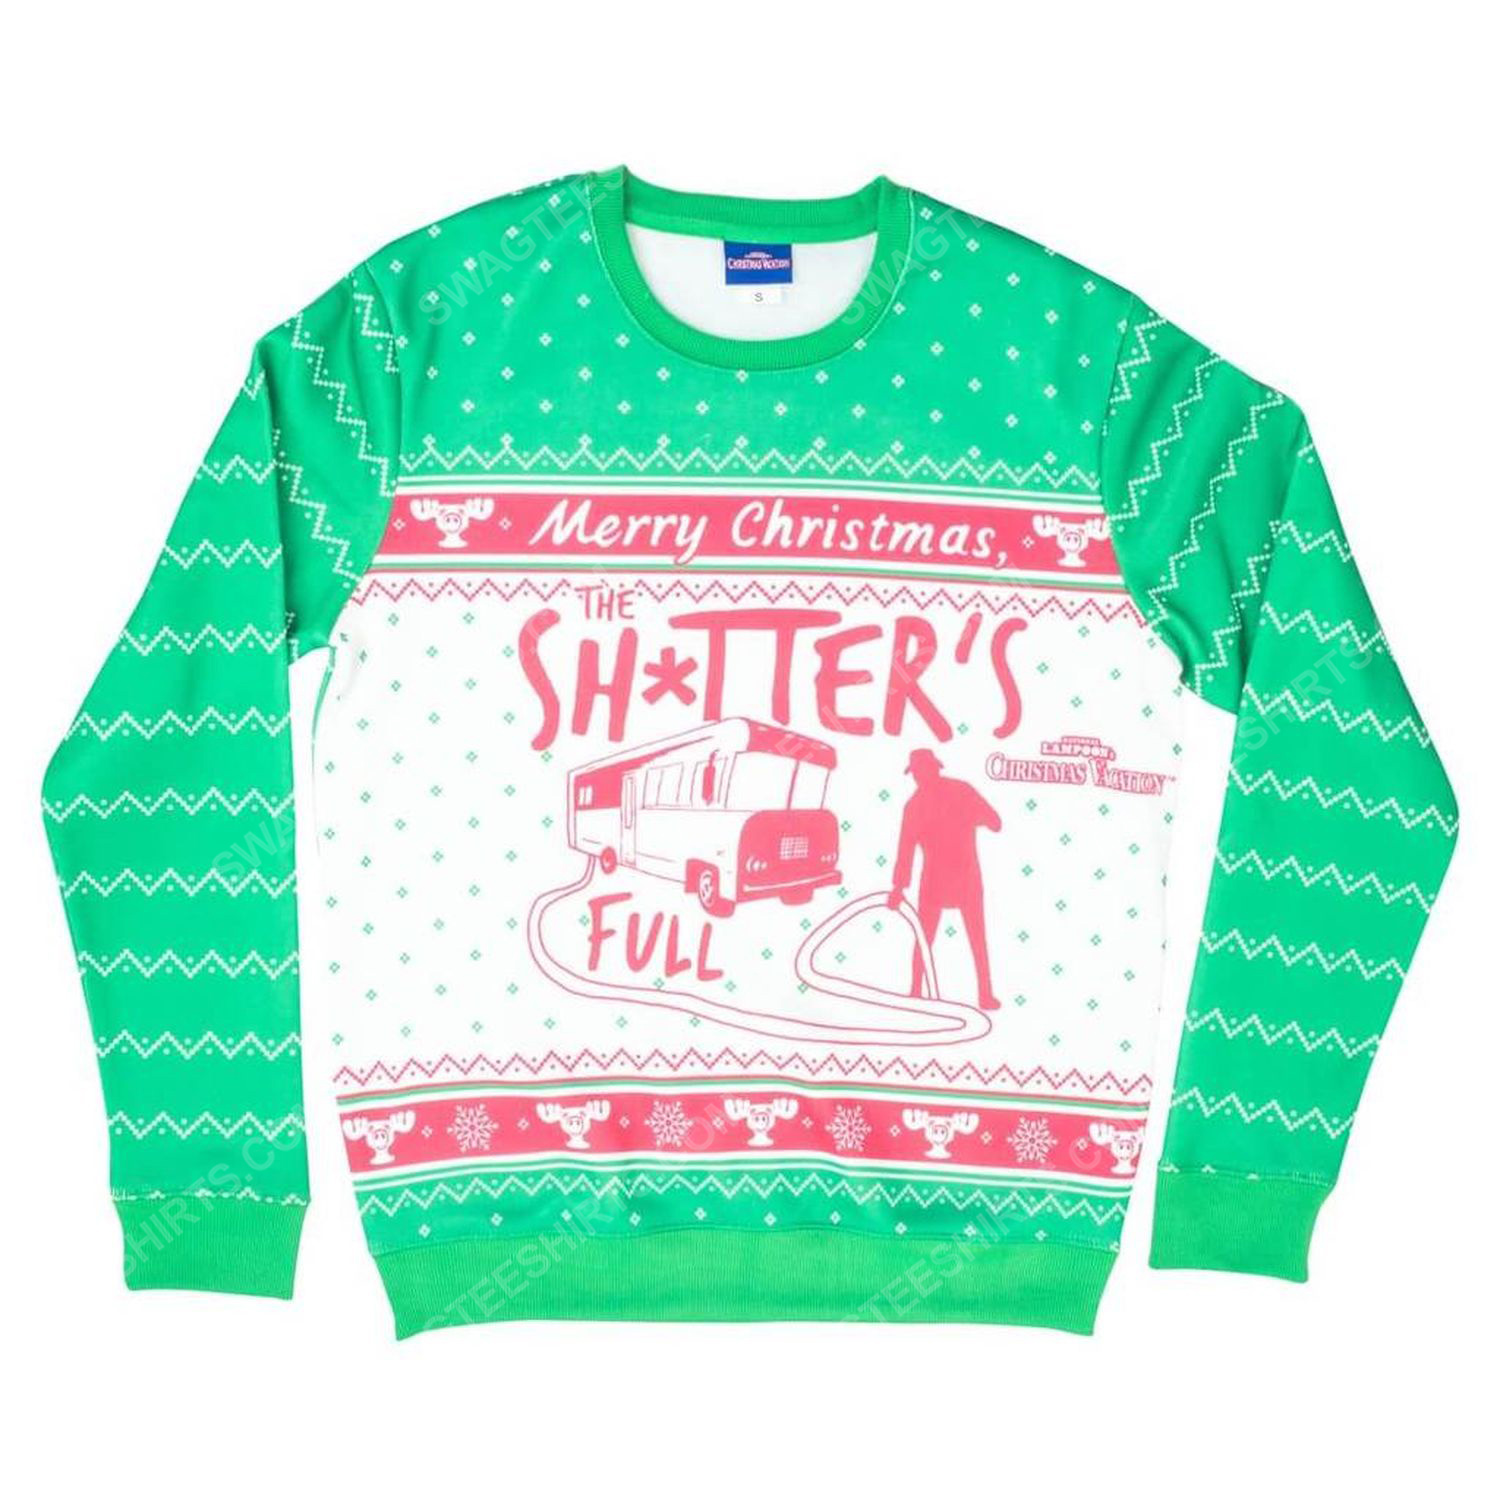 National lampoon's christmas vacation merry christmas shitter was full ugly christmas sweater 2 - Copy (3)